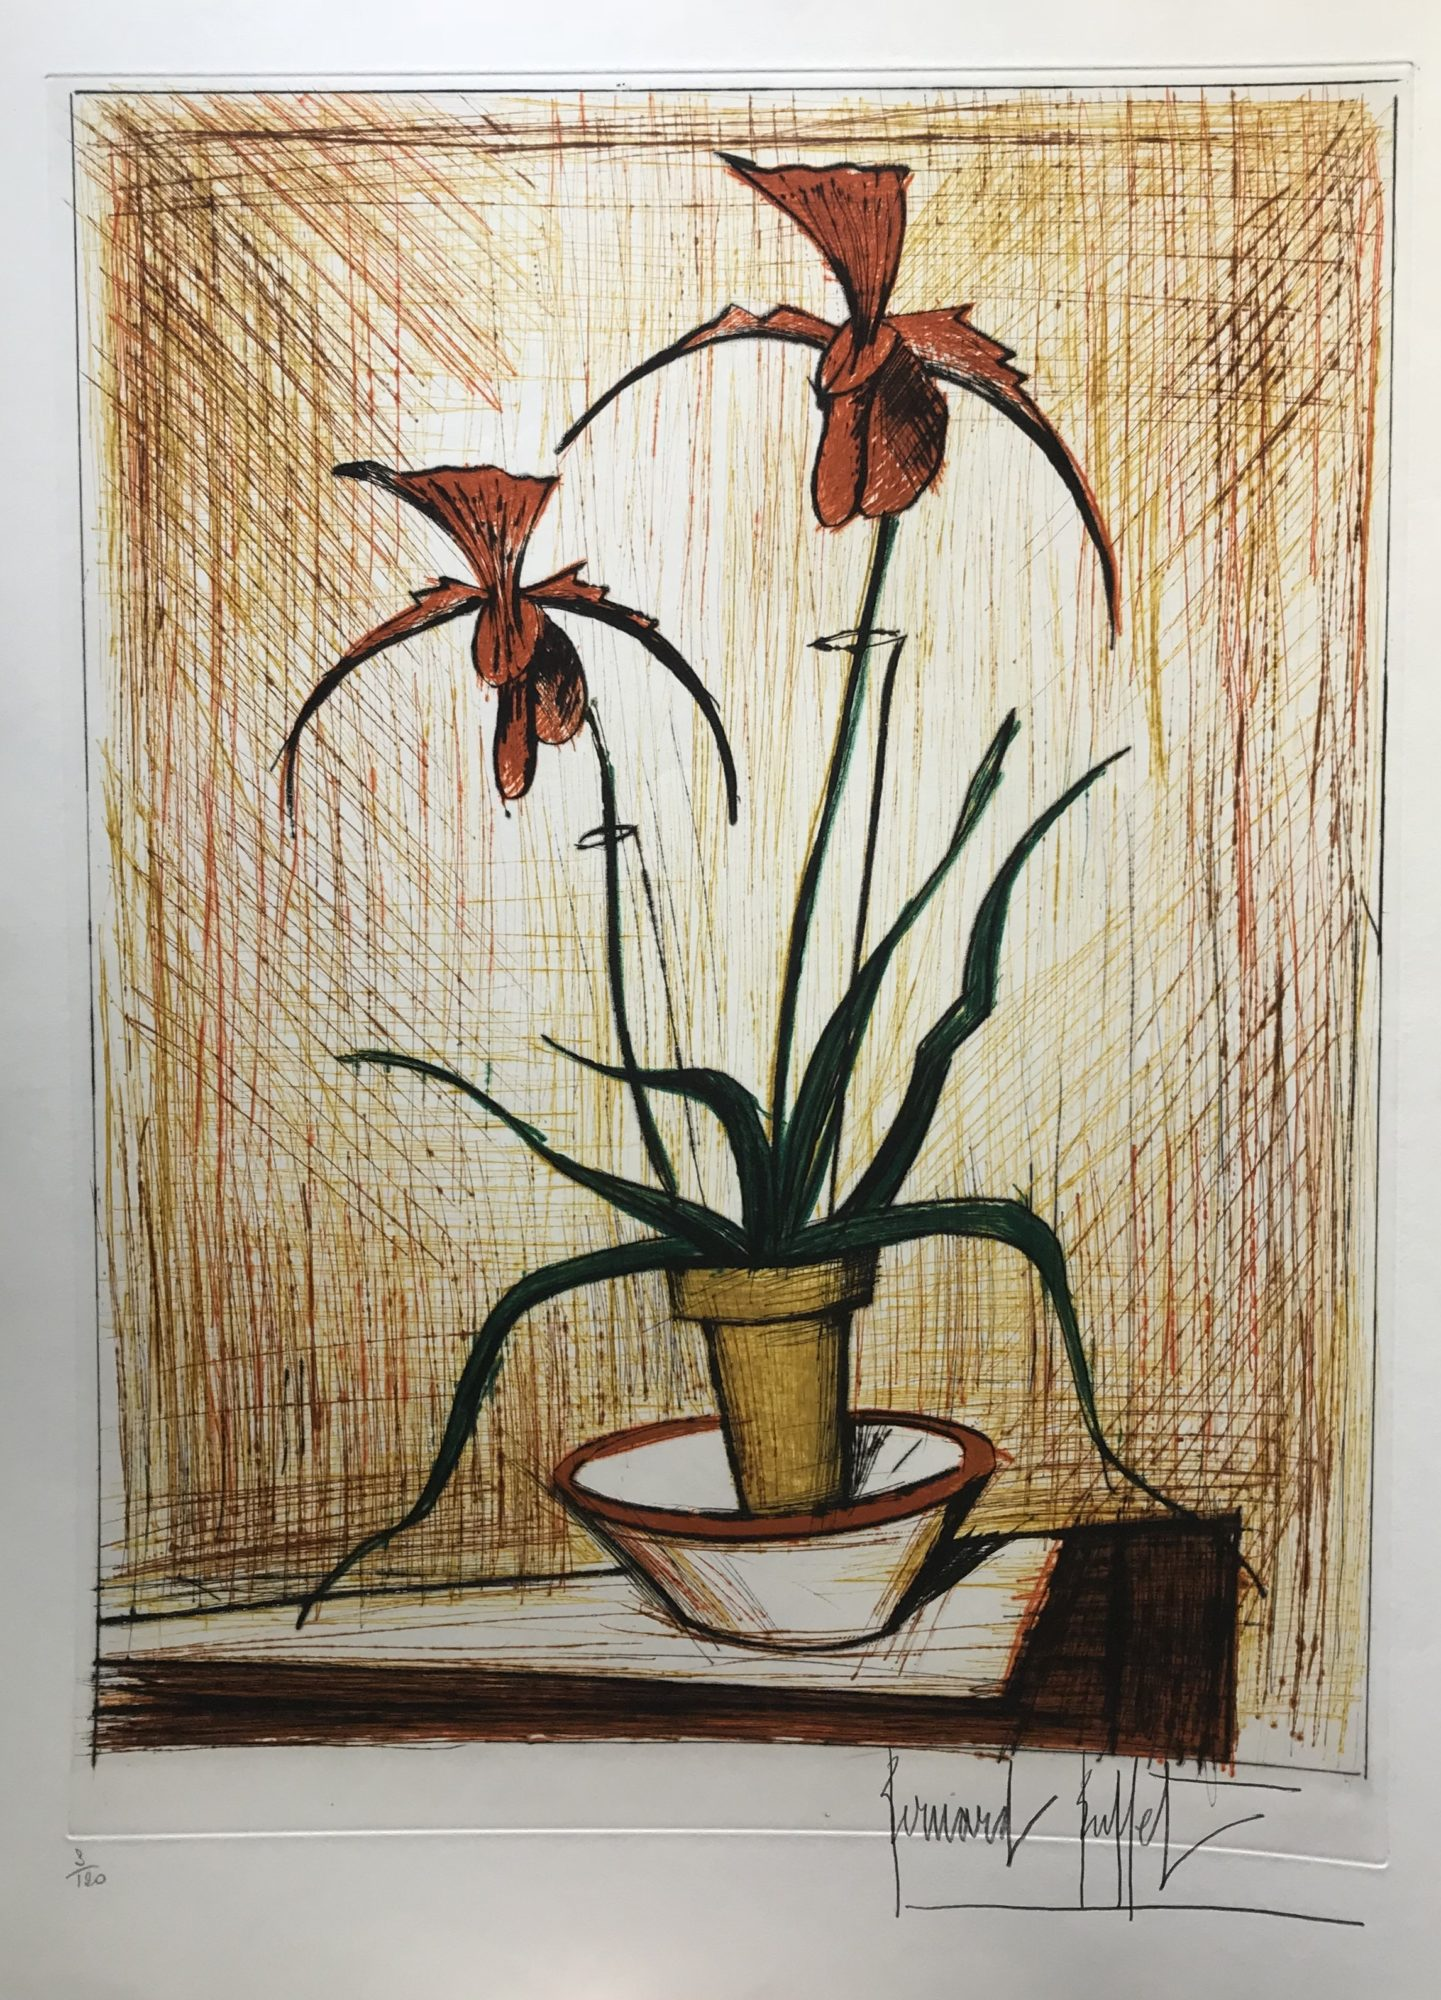 Fine Bernard Buffet Orchidees For Sale Denis Bloch Fine Art Download Free Architecture Designs Scobabritishbridgeorg